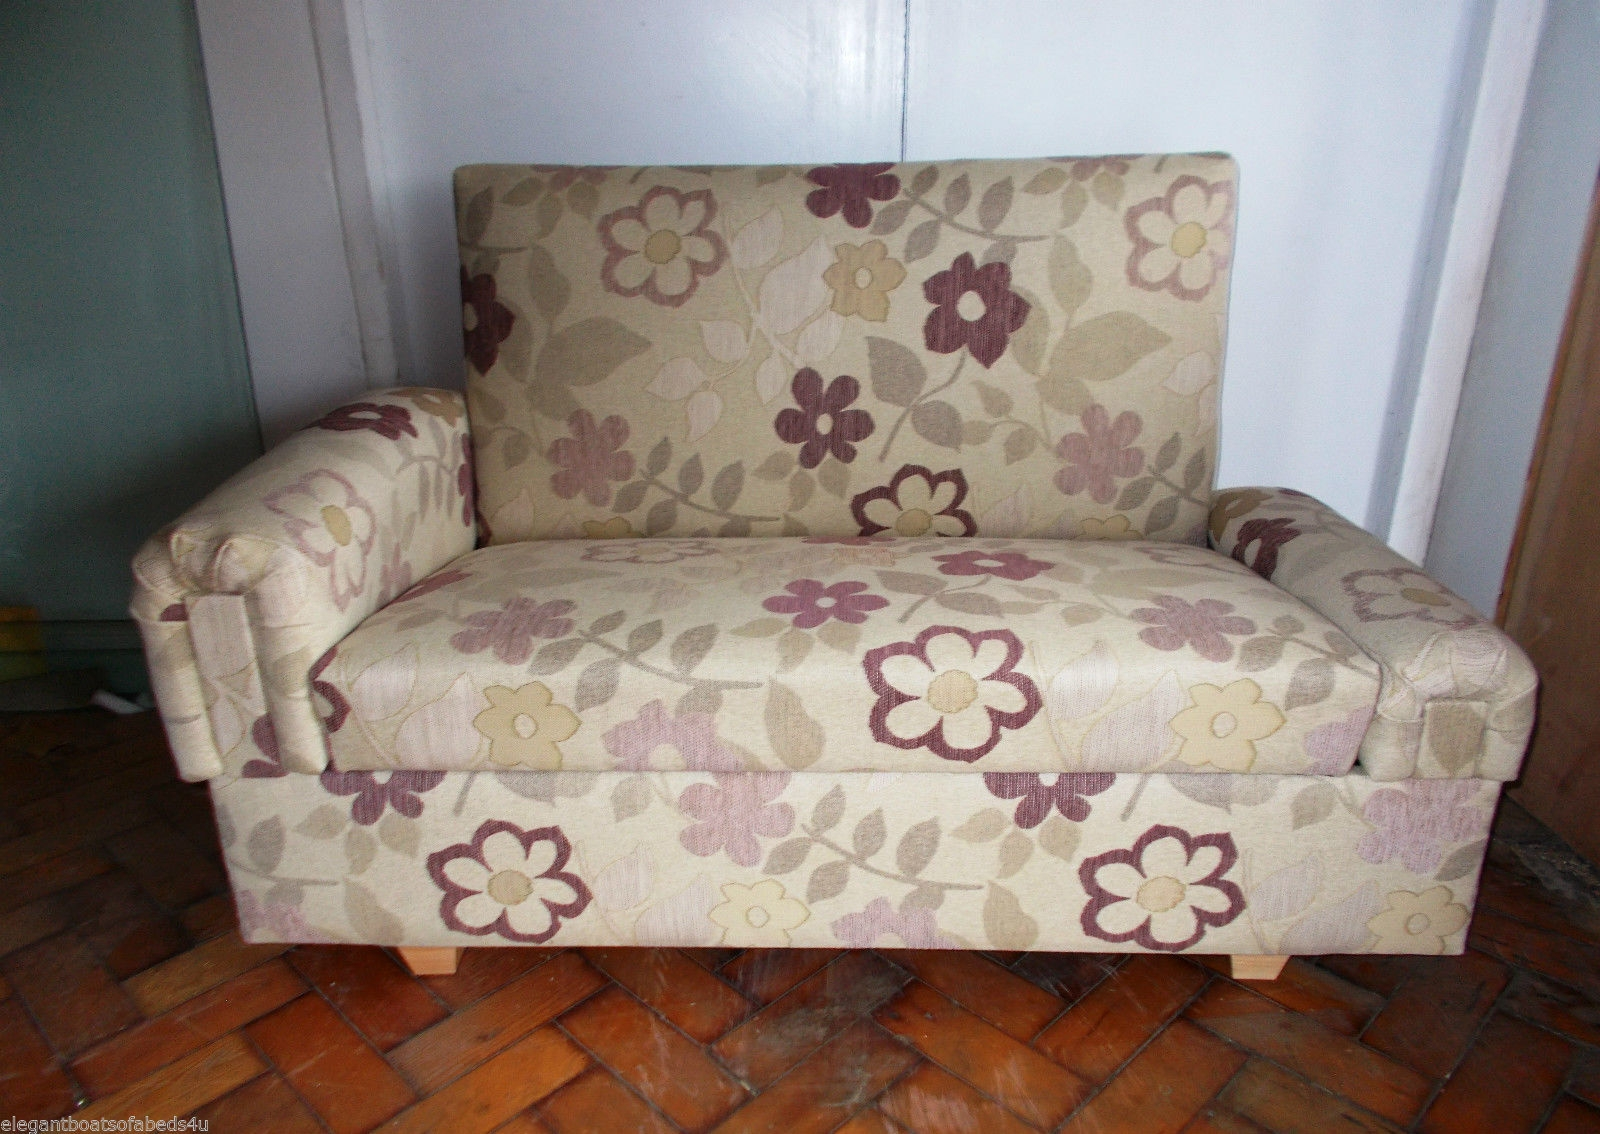 55 Floral Sofa 1000 Ideas About Floral Sofa On Pinterest Country For Chintz Sofa Beds (View 13 of 15)